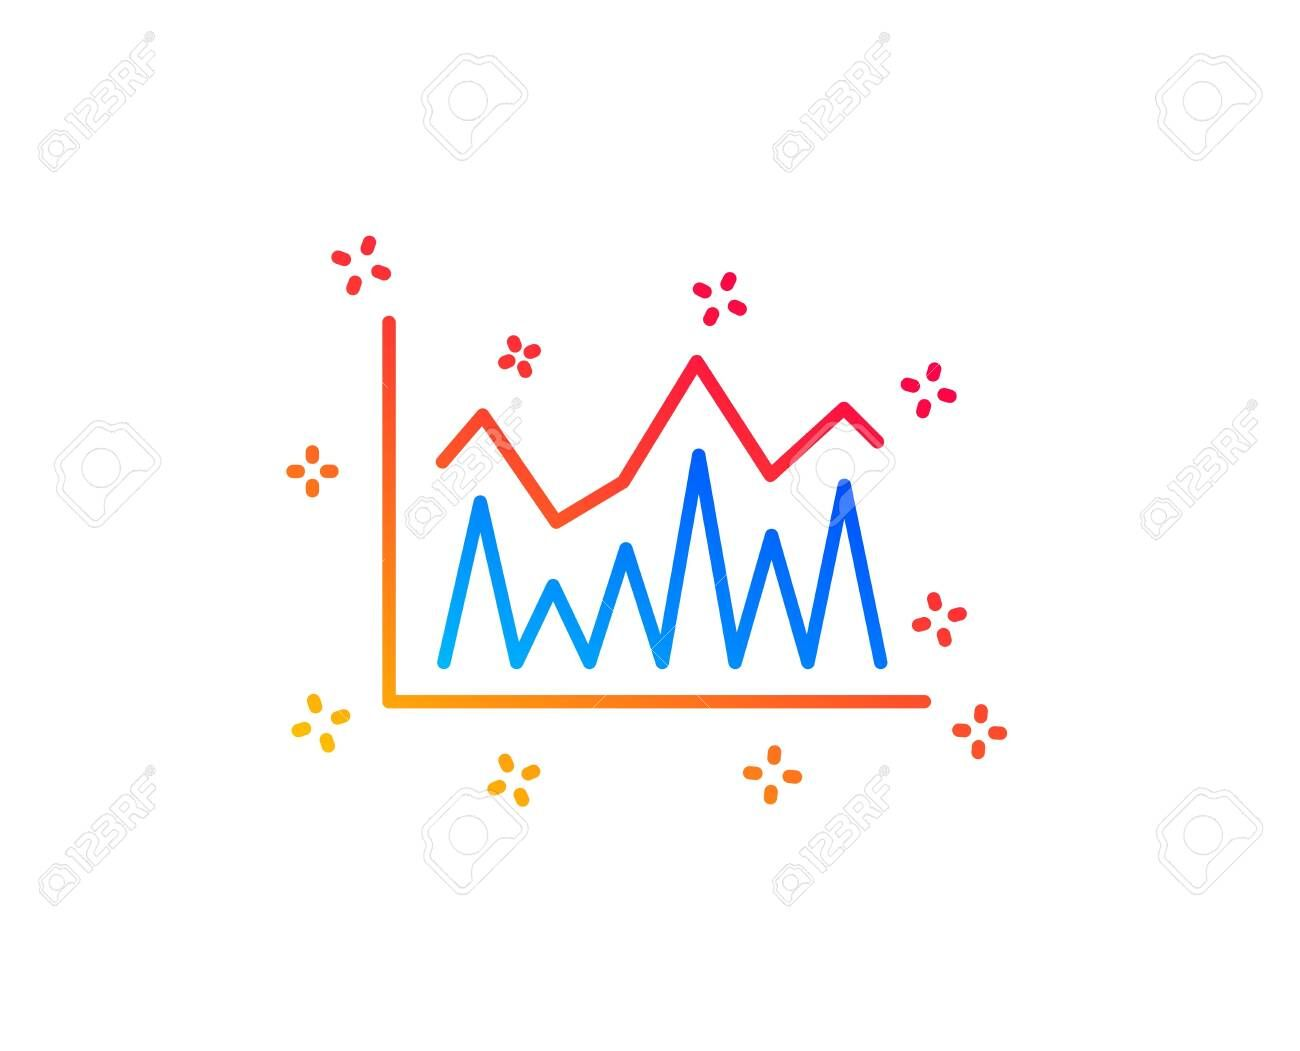 Line Chart Icon Financial Growth Graph Sign Stock Exchange Symbol Gradient Design Elements Linear Investment Icon Random Shapes Vector Spon Art Pincode